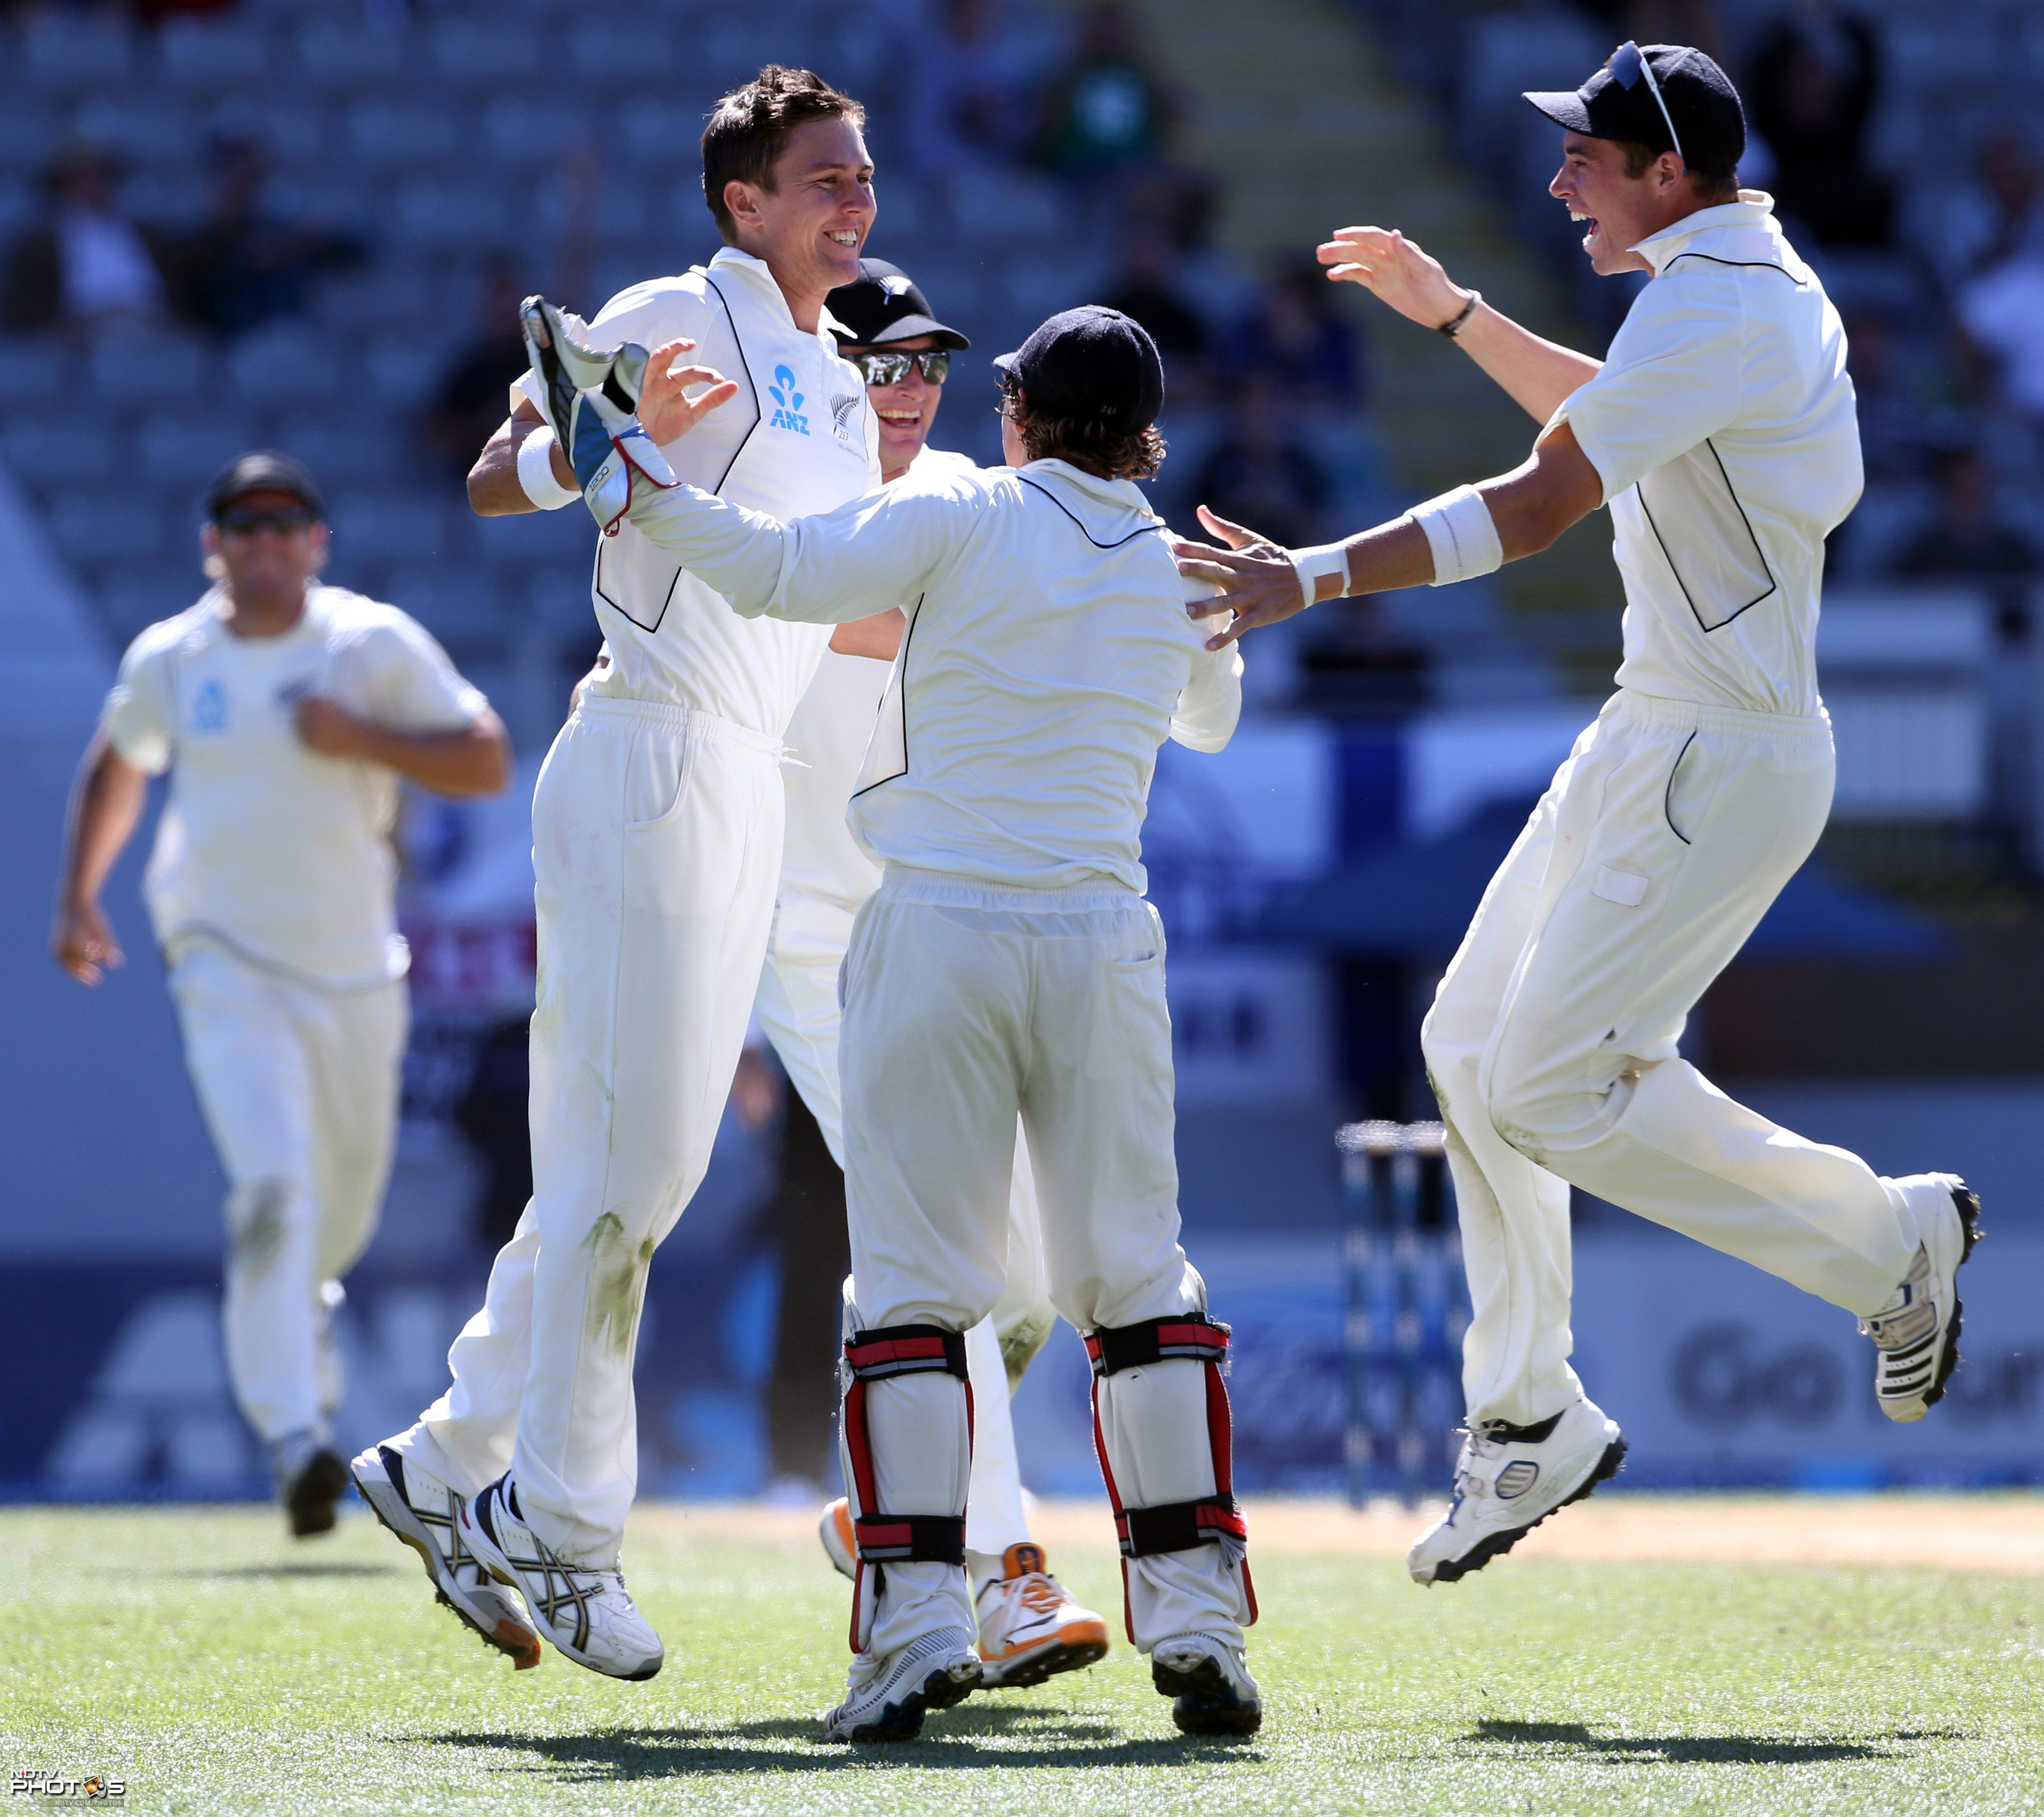 Trent Boult bagged 6 wickets to bundle out England for 204 in their first innings.